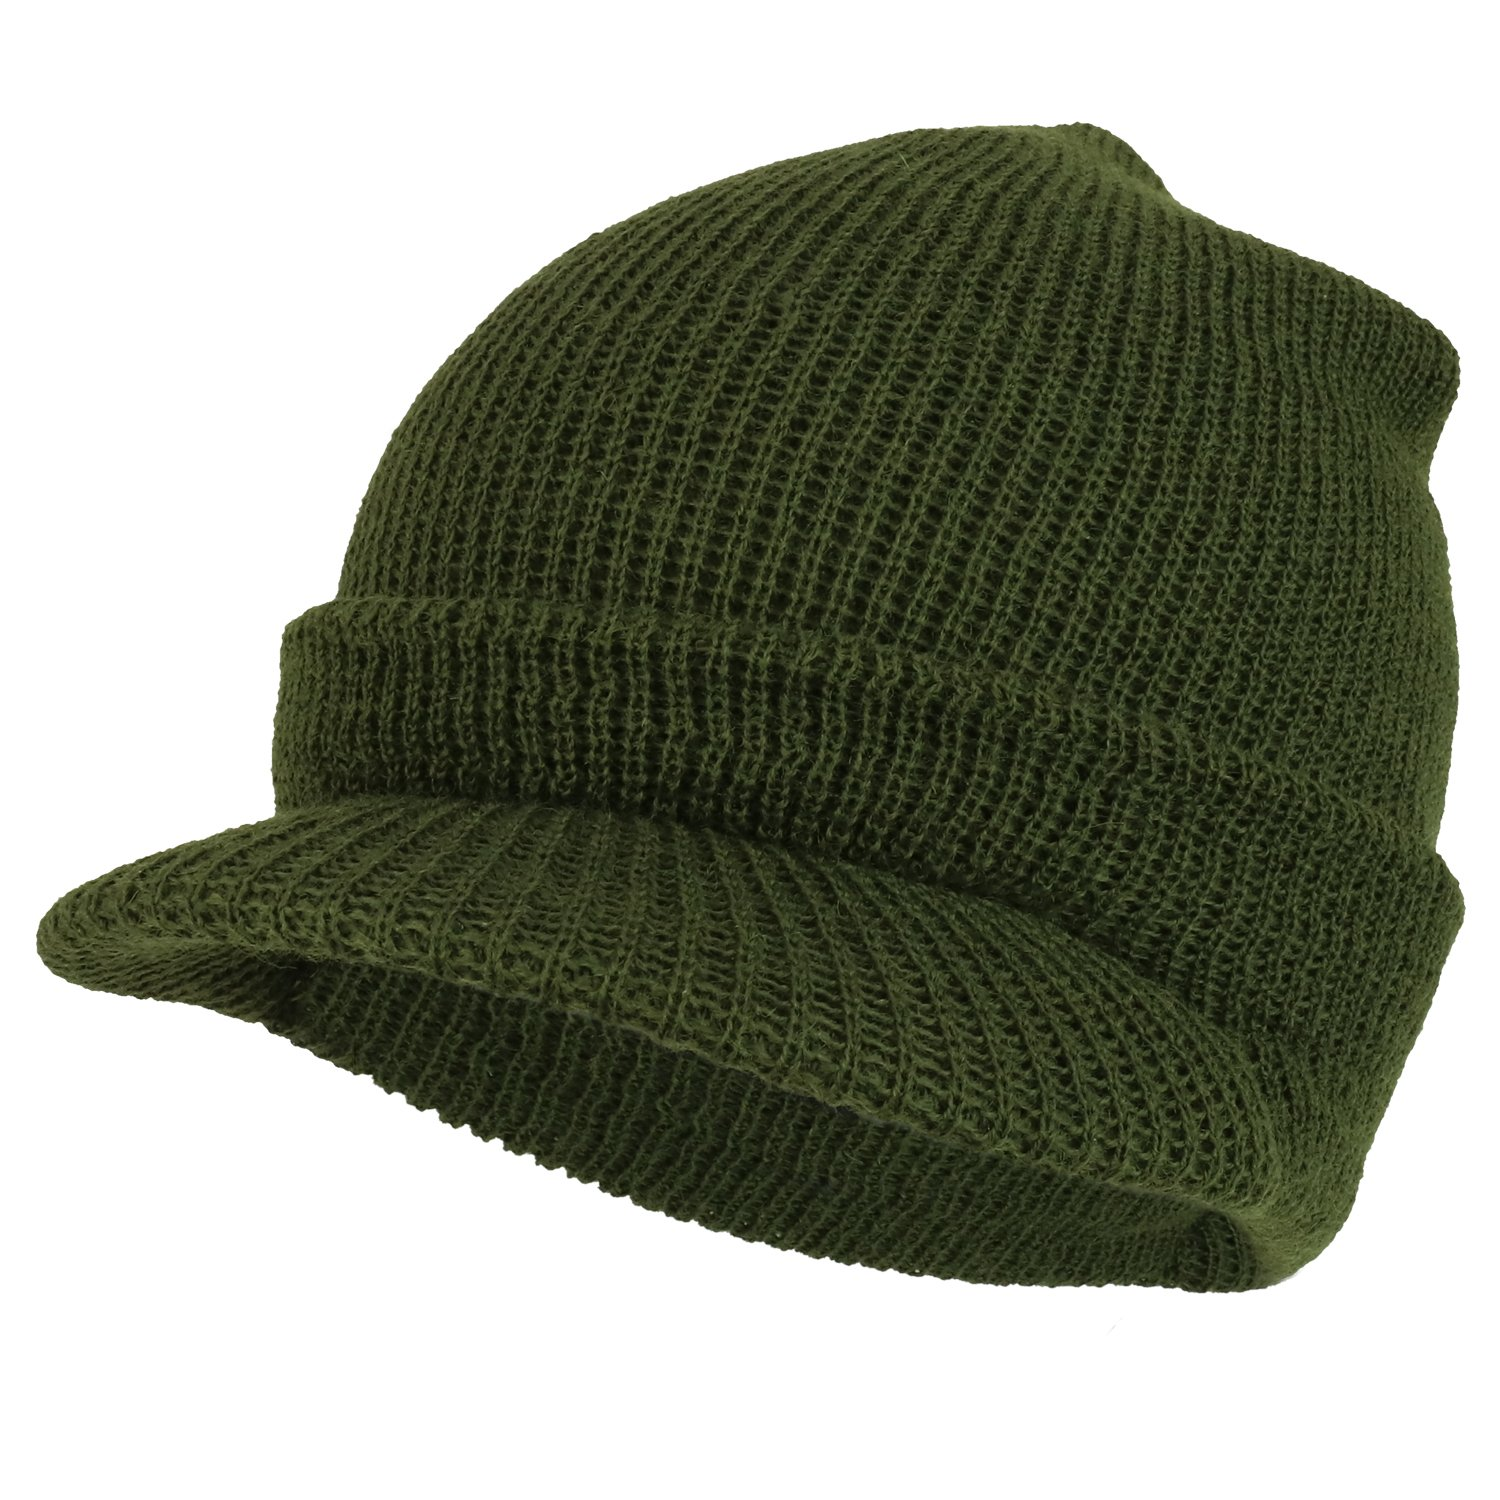 Amazon.com  Armycrew Made in USA Government Issue Wool Ribbed Visor Beanie  Jeep Cap - Black  Clothing 7b6eb5f0e03